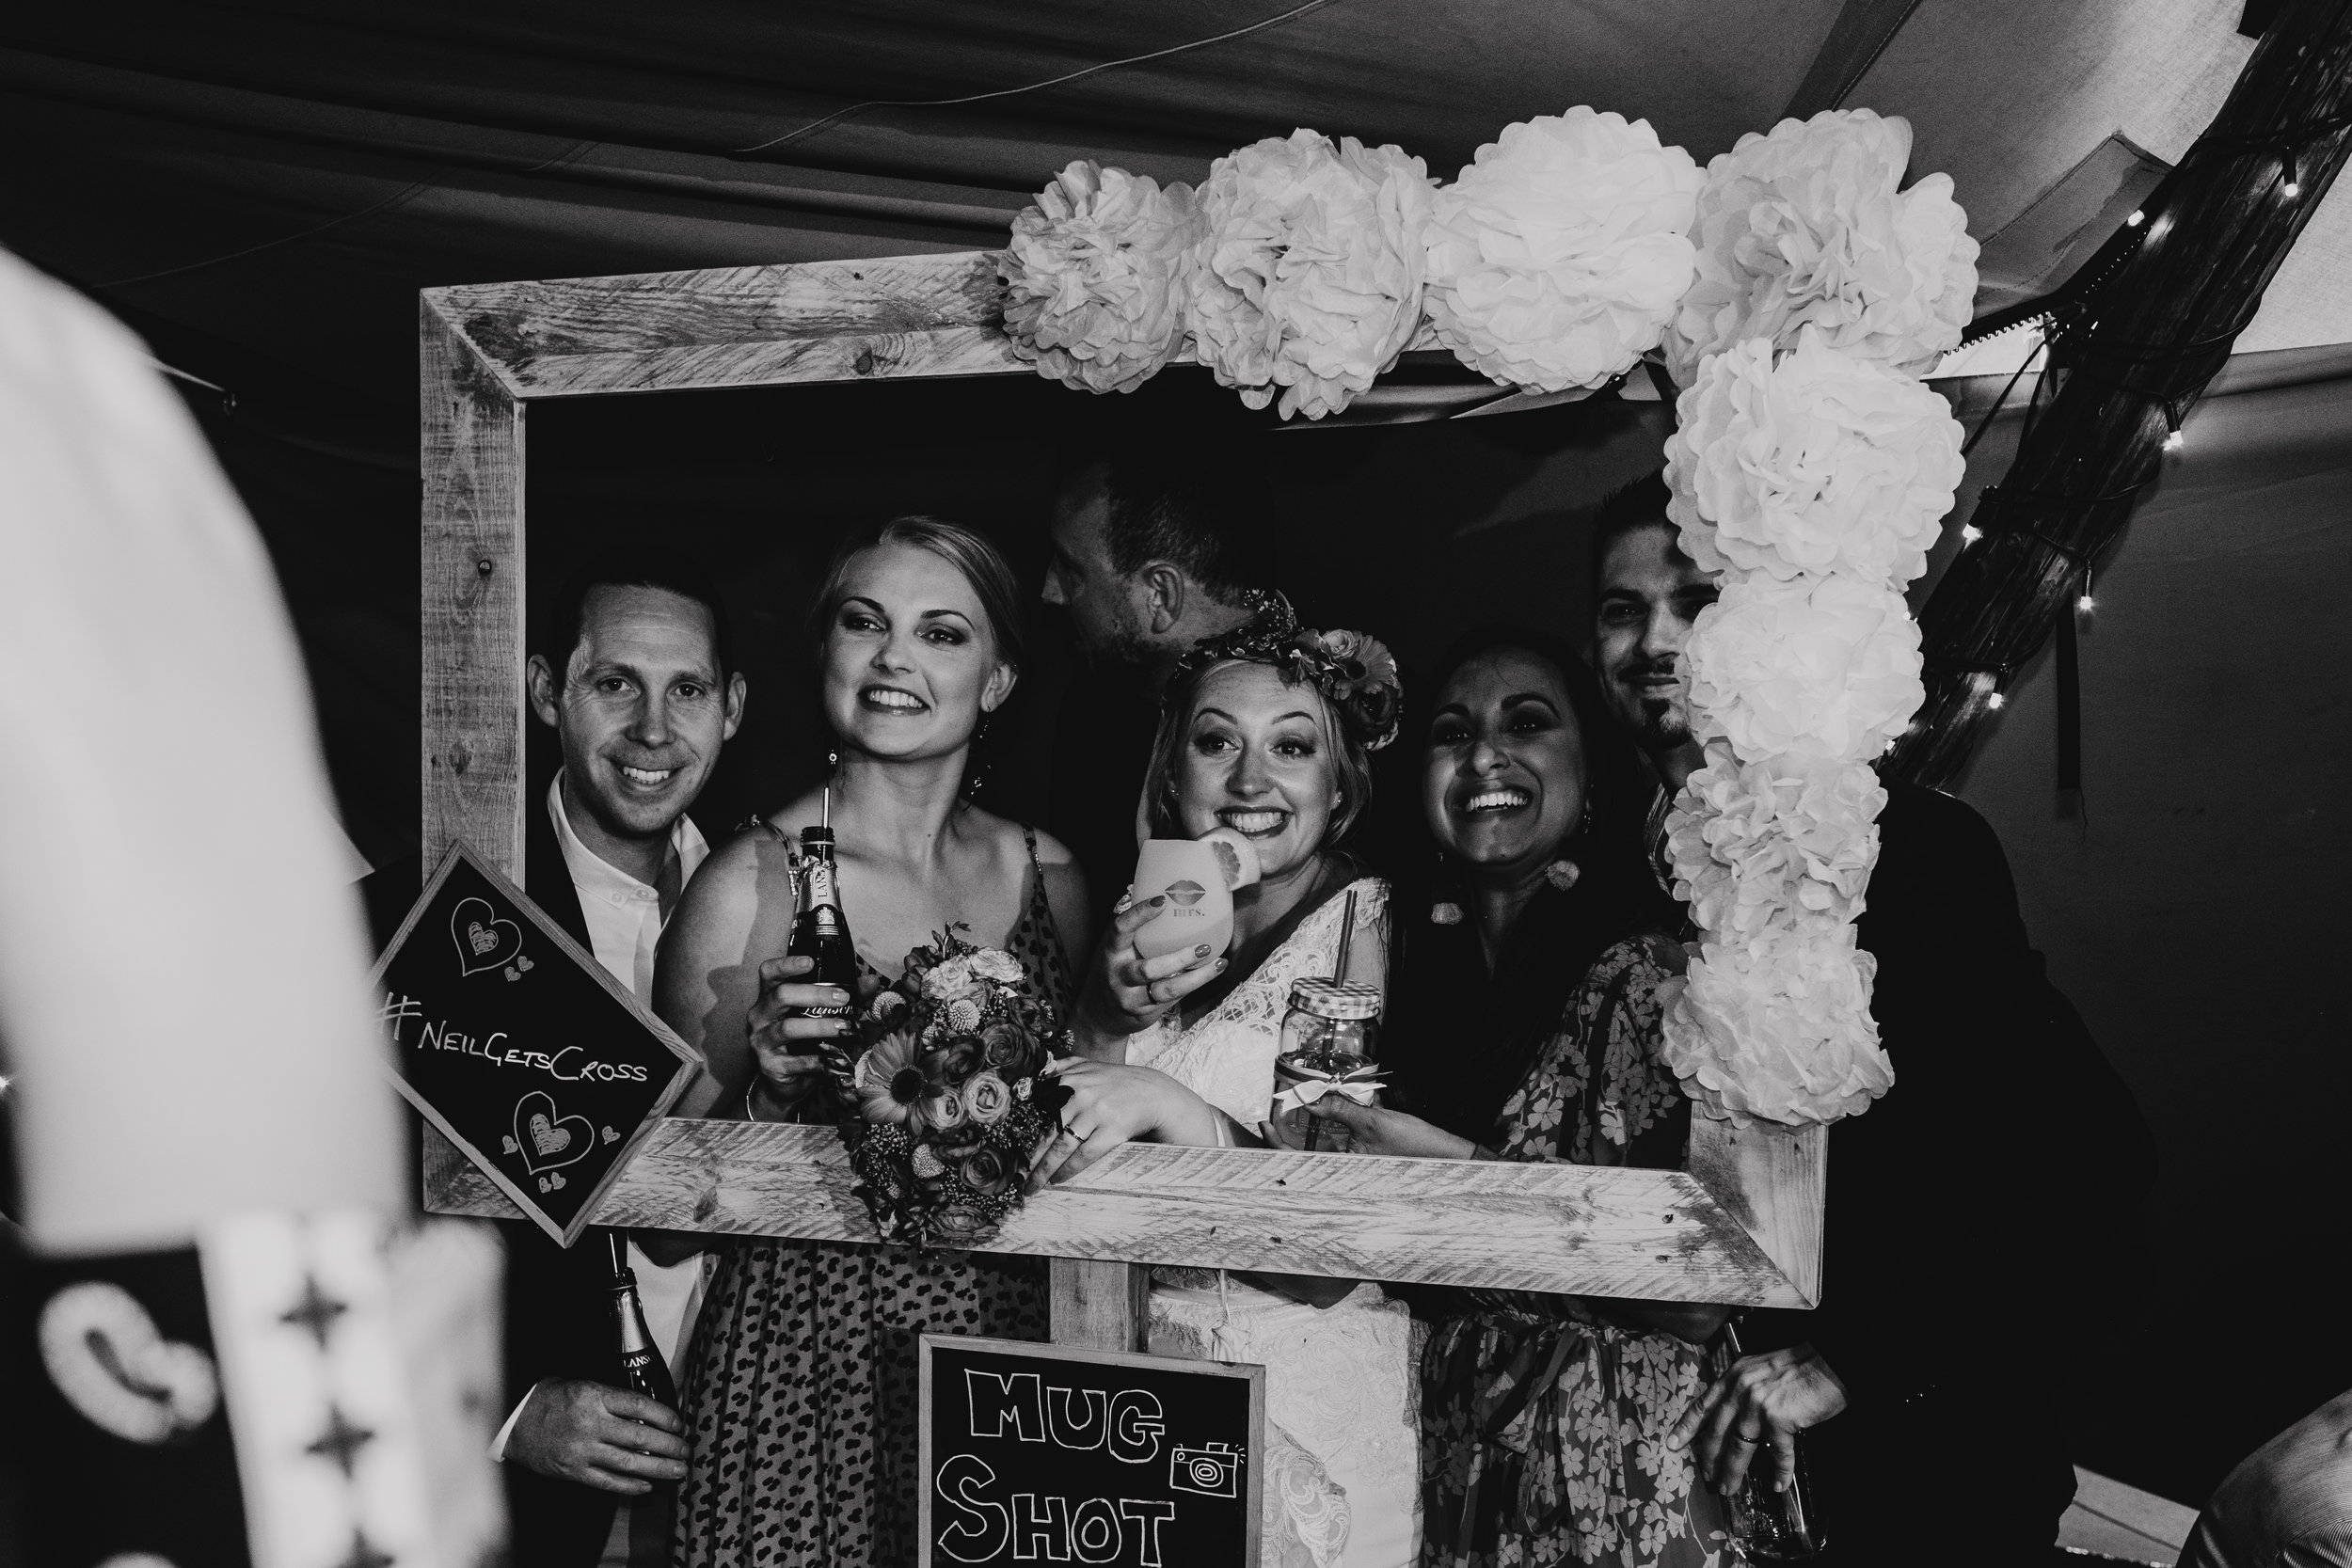 Bride and friends posing for photograph with large photo frame